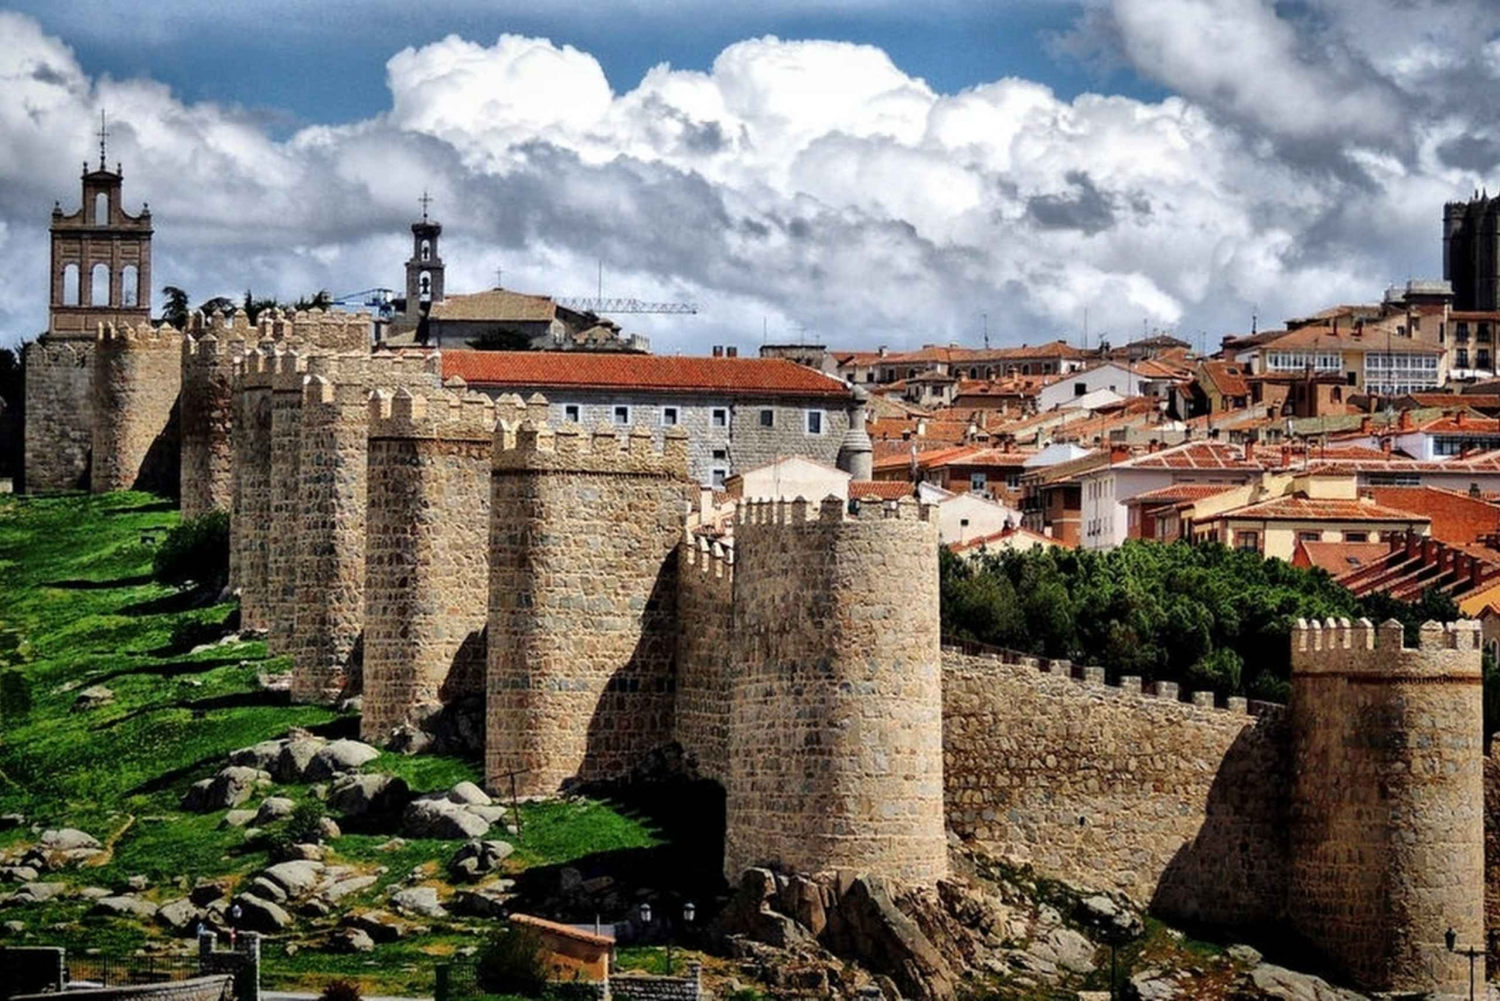 From Segovia, Avila and Toledo Three Cities Day Trip